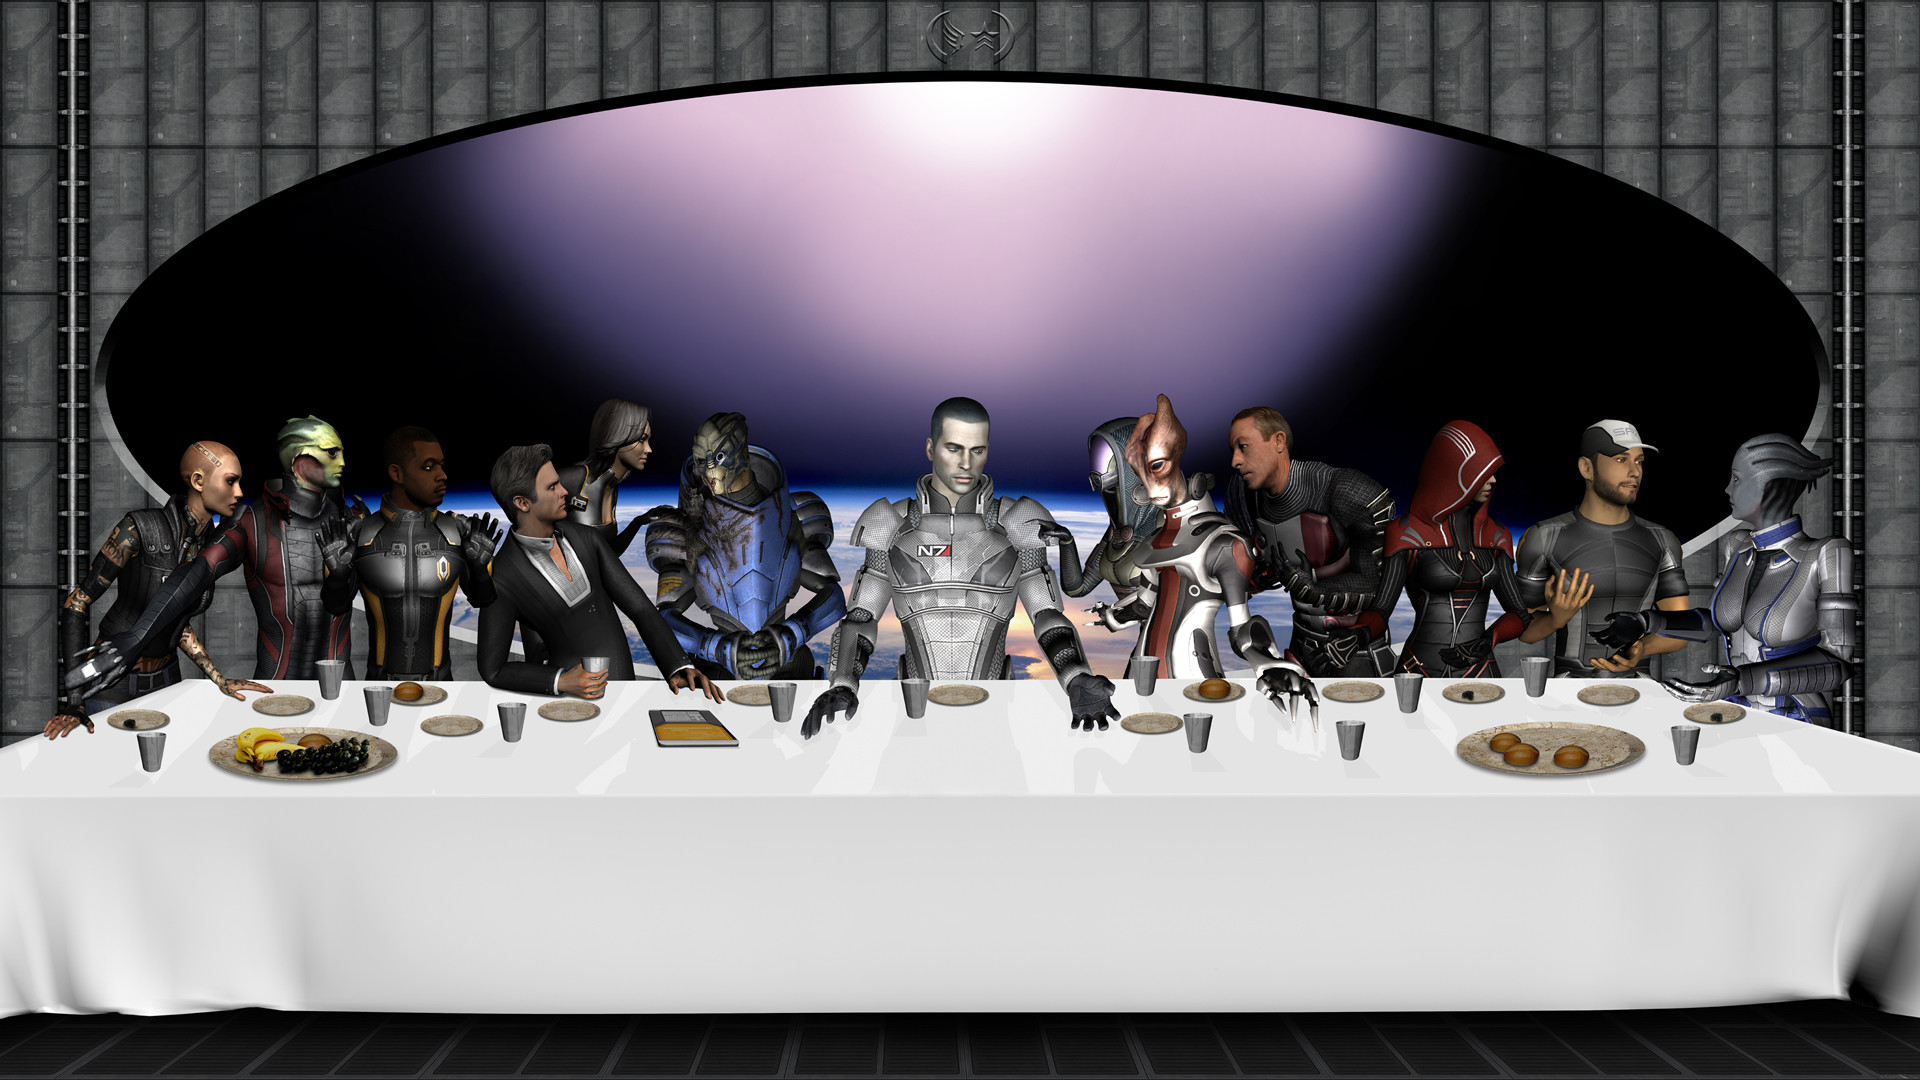 119 1190591 the last supper furry the last supper